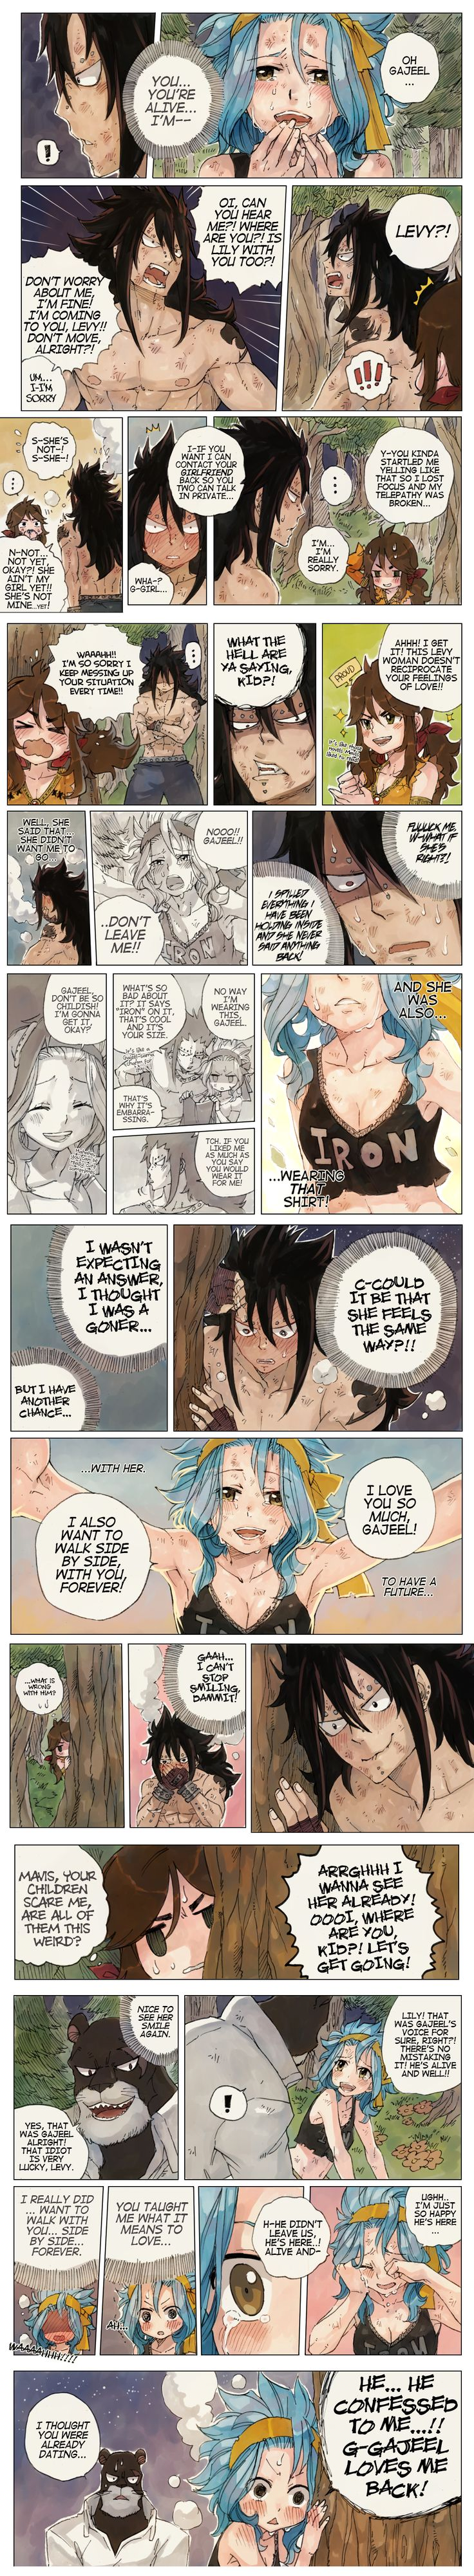 SKETCHY ❤ FLAVOR First off. Gajeel-sama! That is so cute. XD And secondly, Lily already thought they were dating. XD I love these comics.